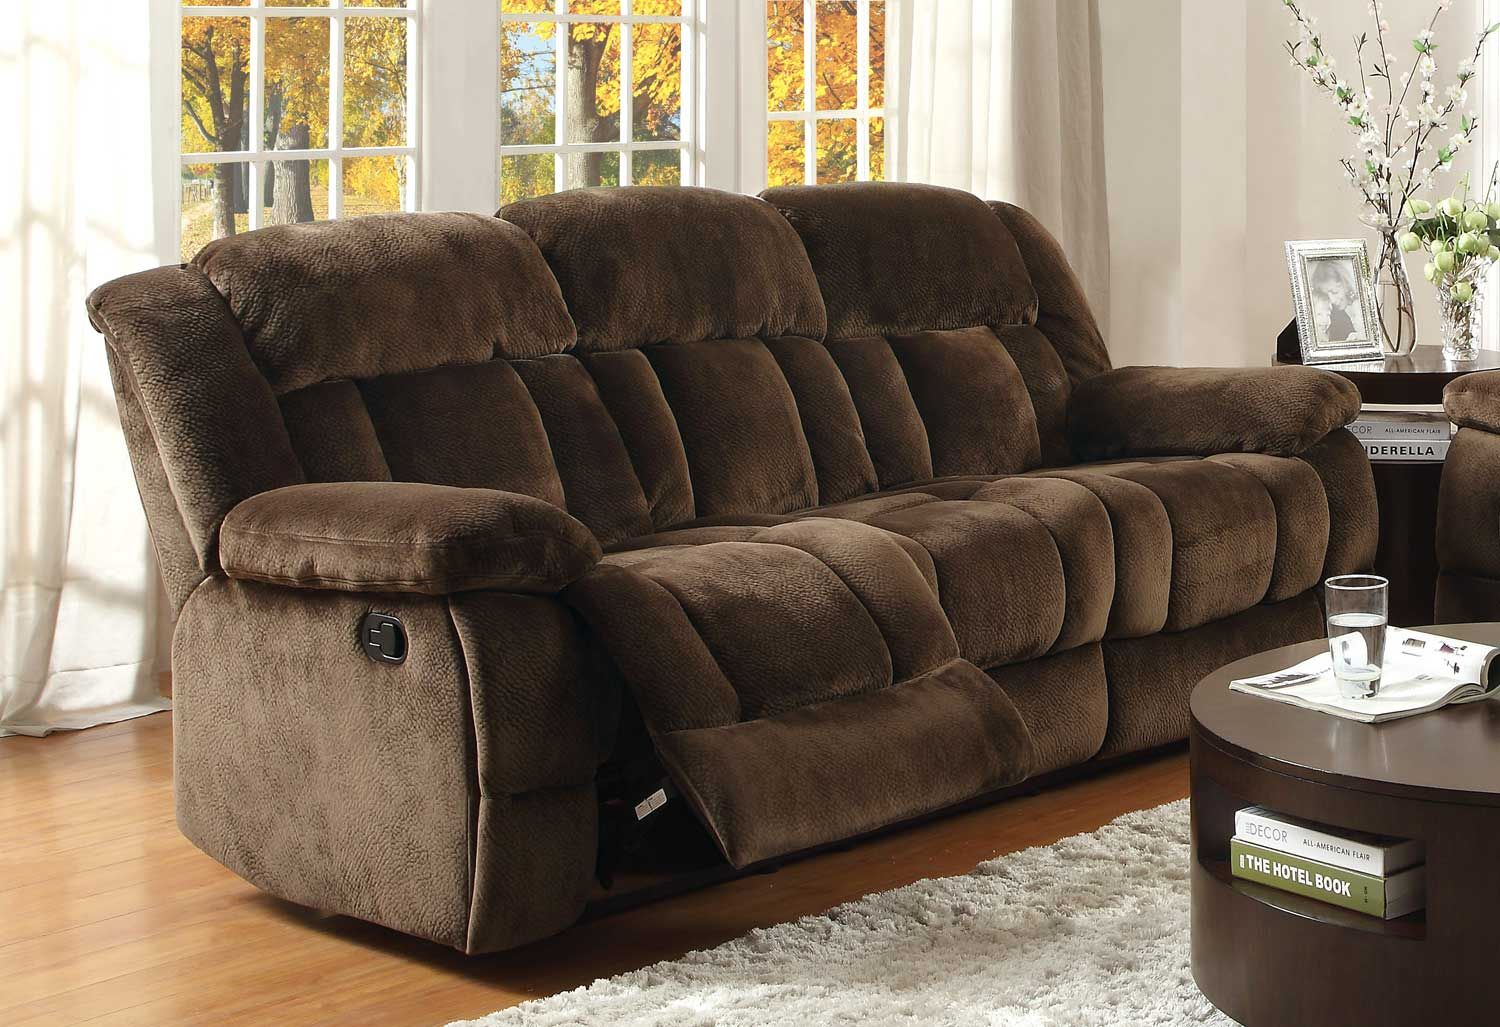 plush archer sofa bed price apartment sectional recliner homelegance laurelton double reclining chocolate